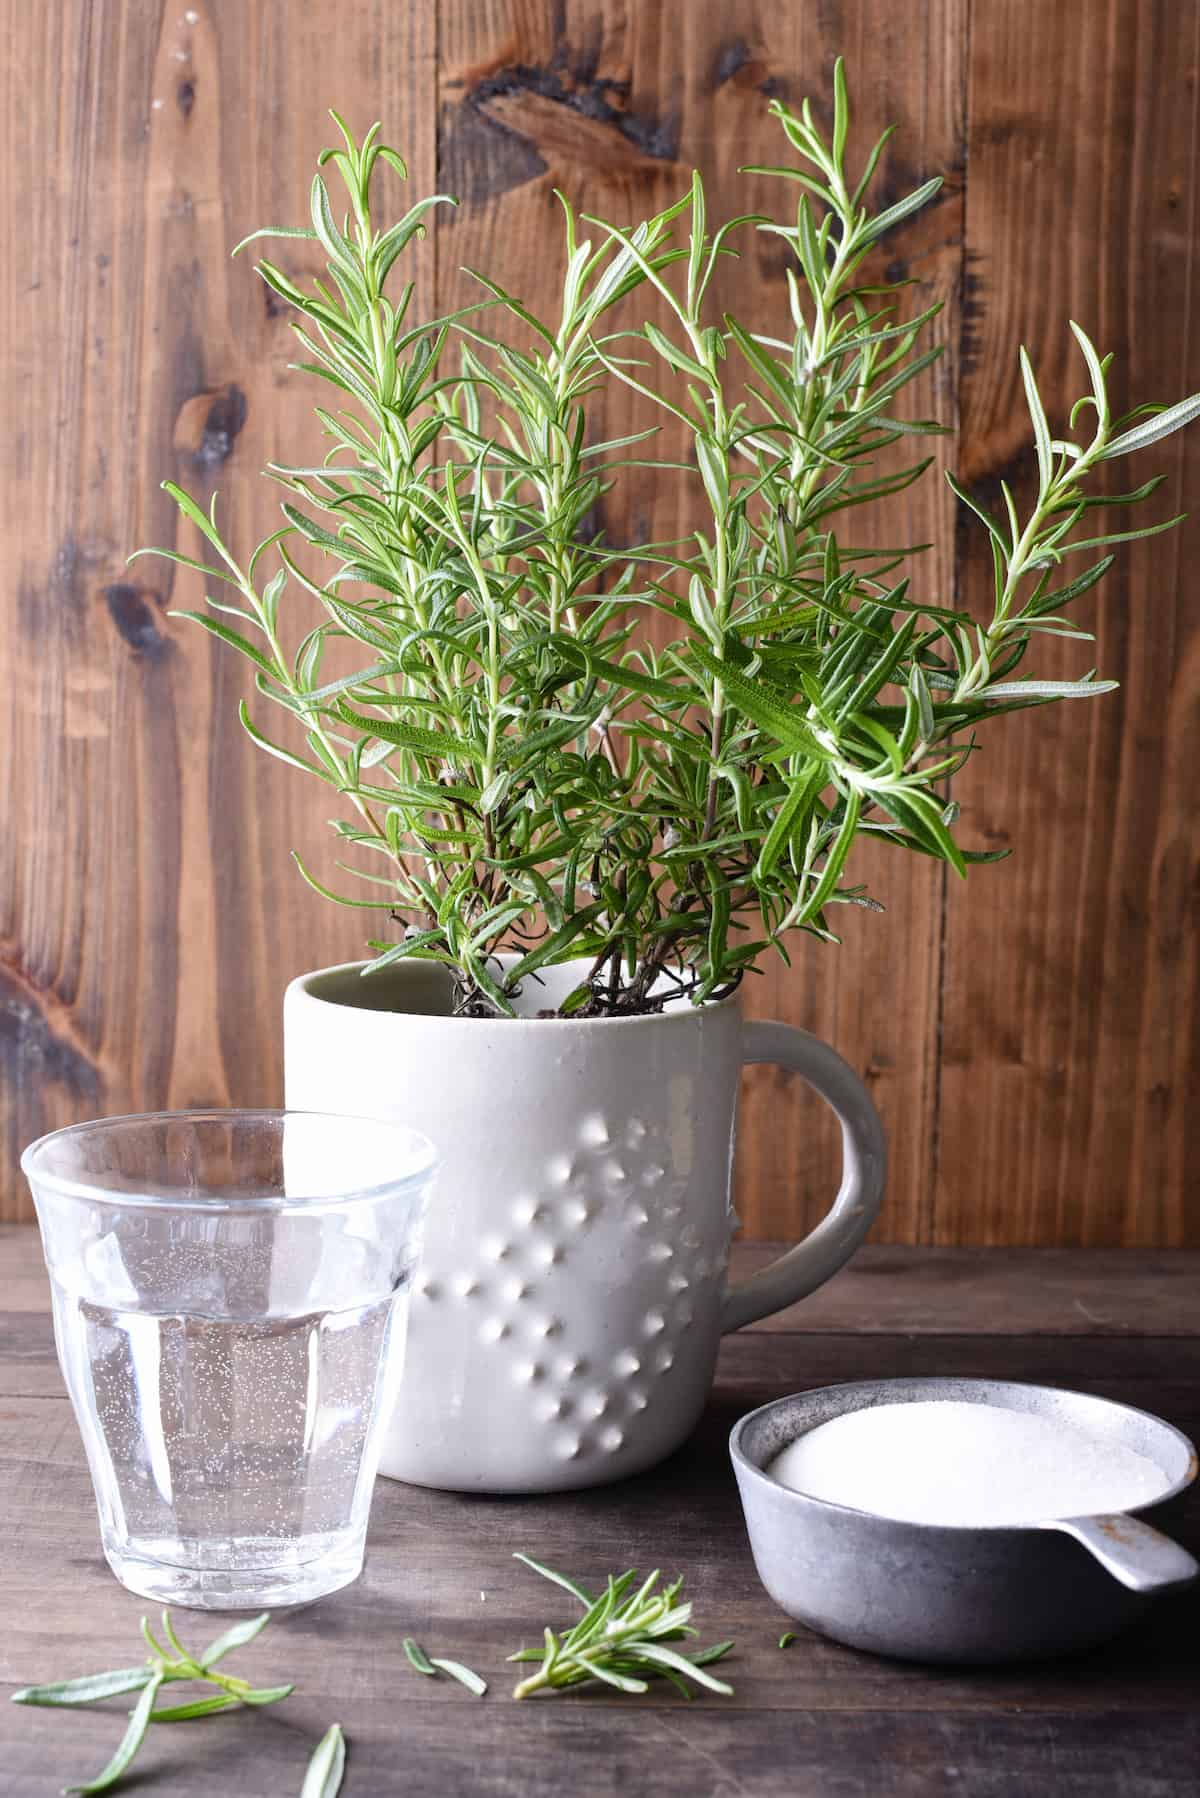 Glass of water, rosemary plant and cup of white sugar against wooden backdrop.